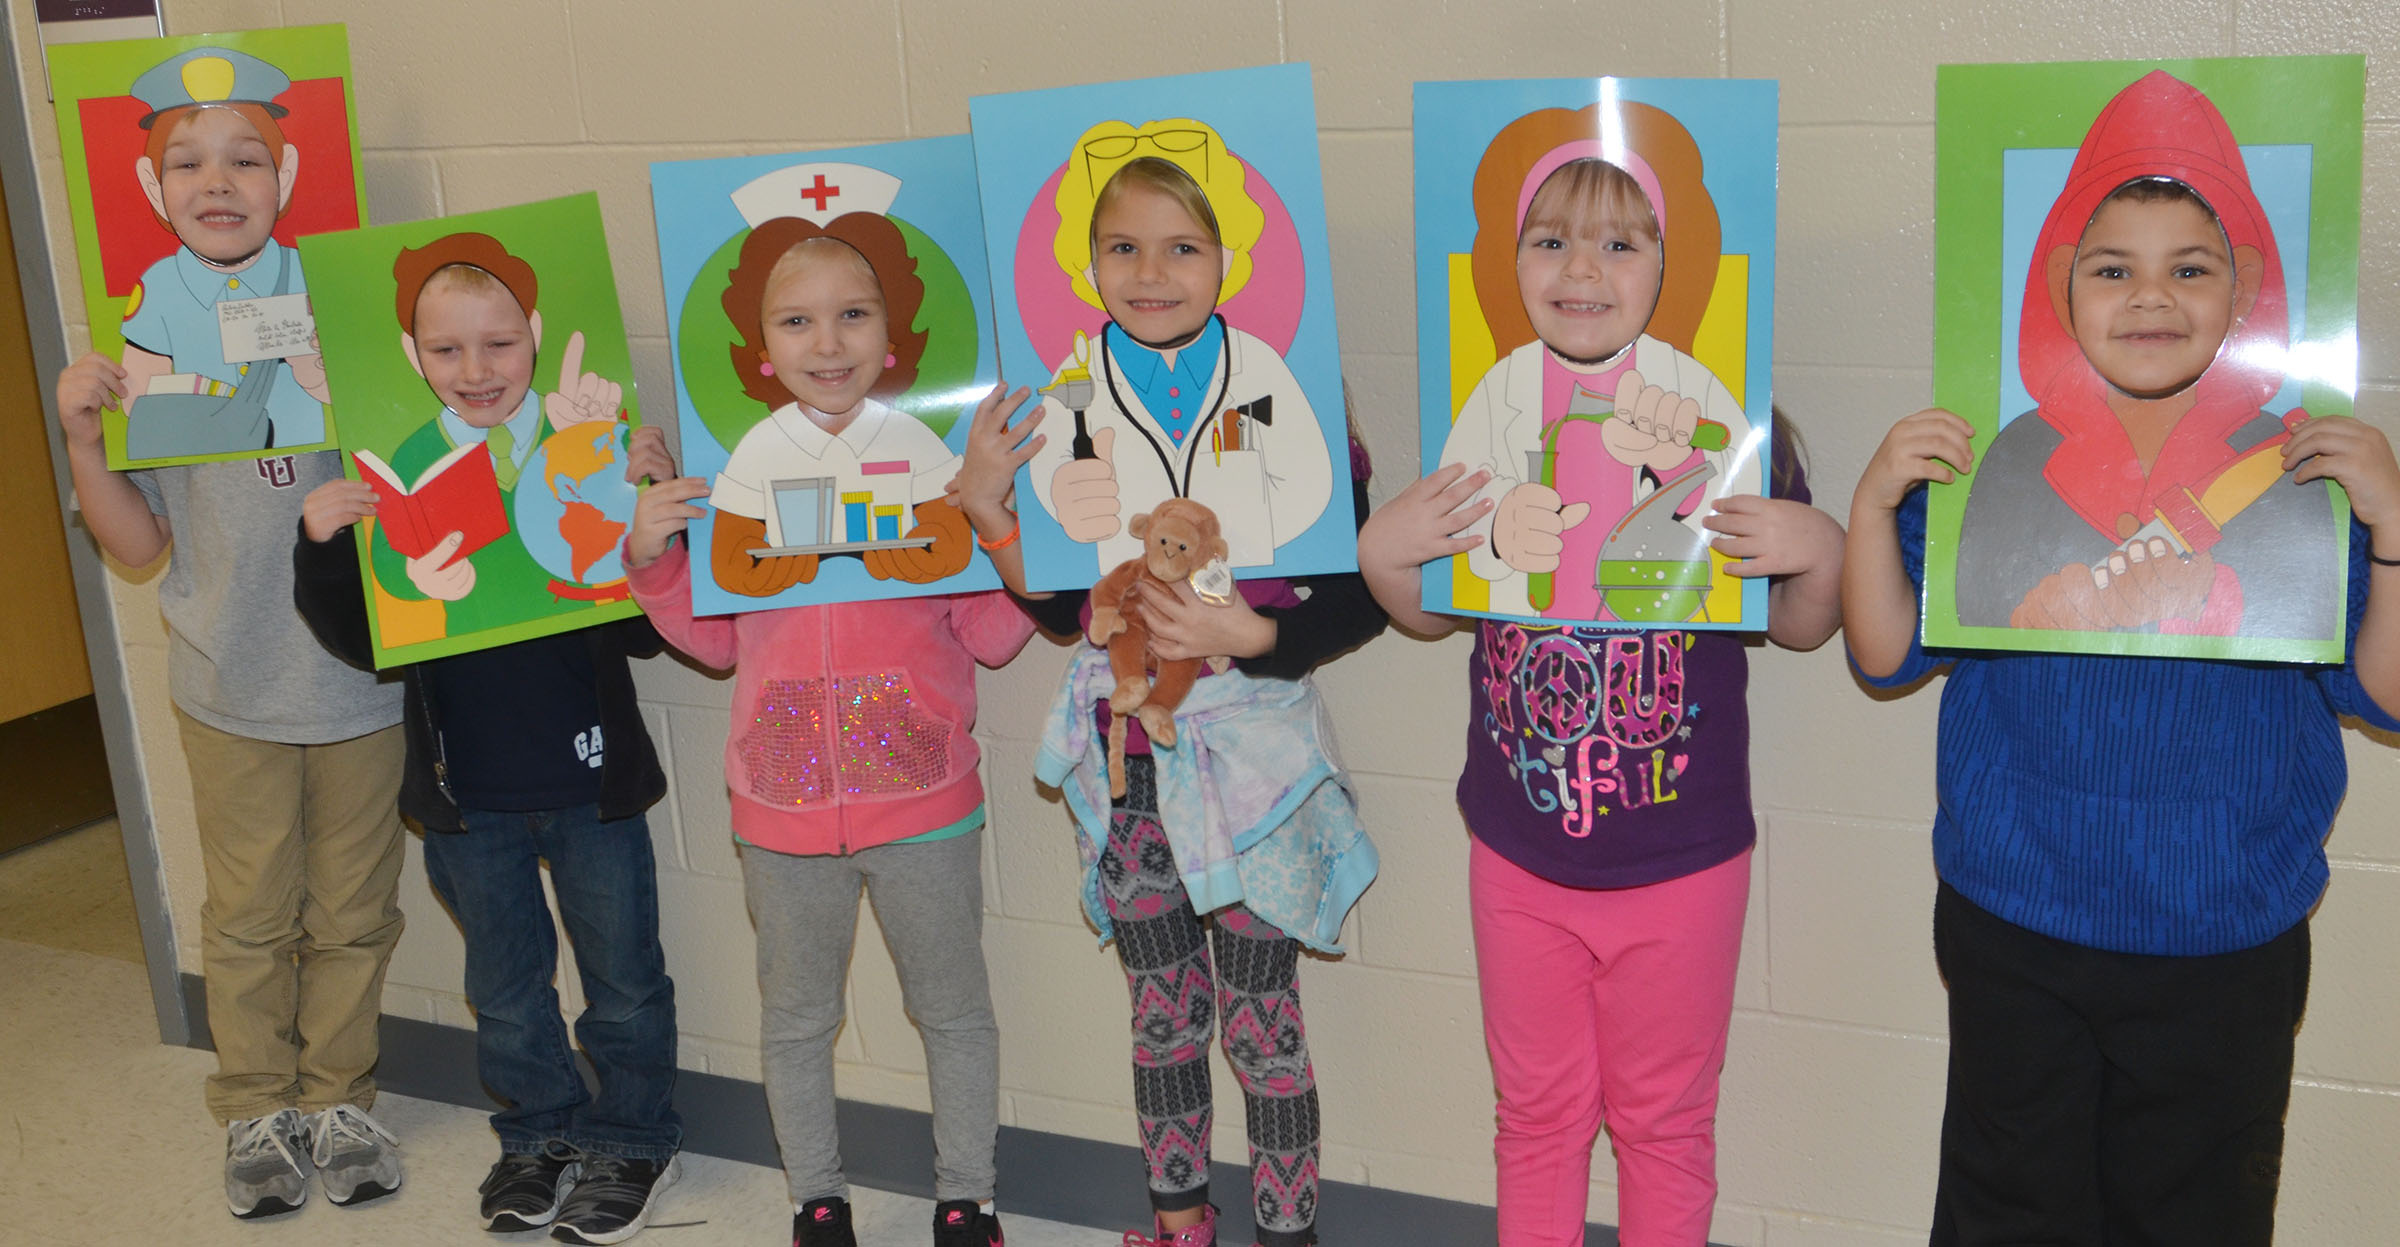 CES kindergarteners pose as the community helpers they hope to be when they grow older. From left are John Hagan Newton, Jackson Wright, Aubrey Novak, Gracie Gebler, Briley Sapp and NyJah Vaught.